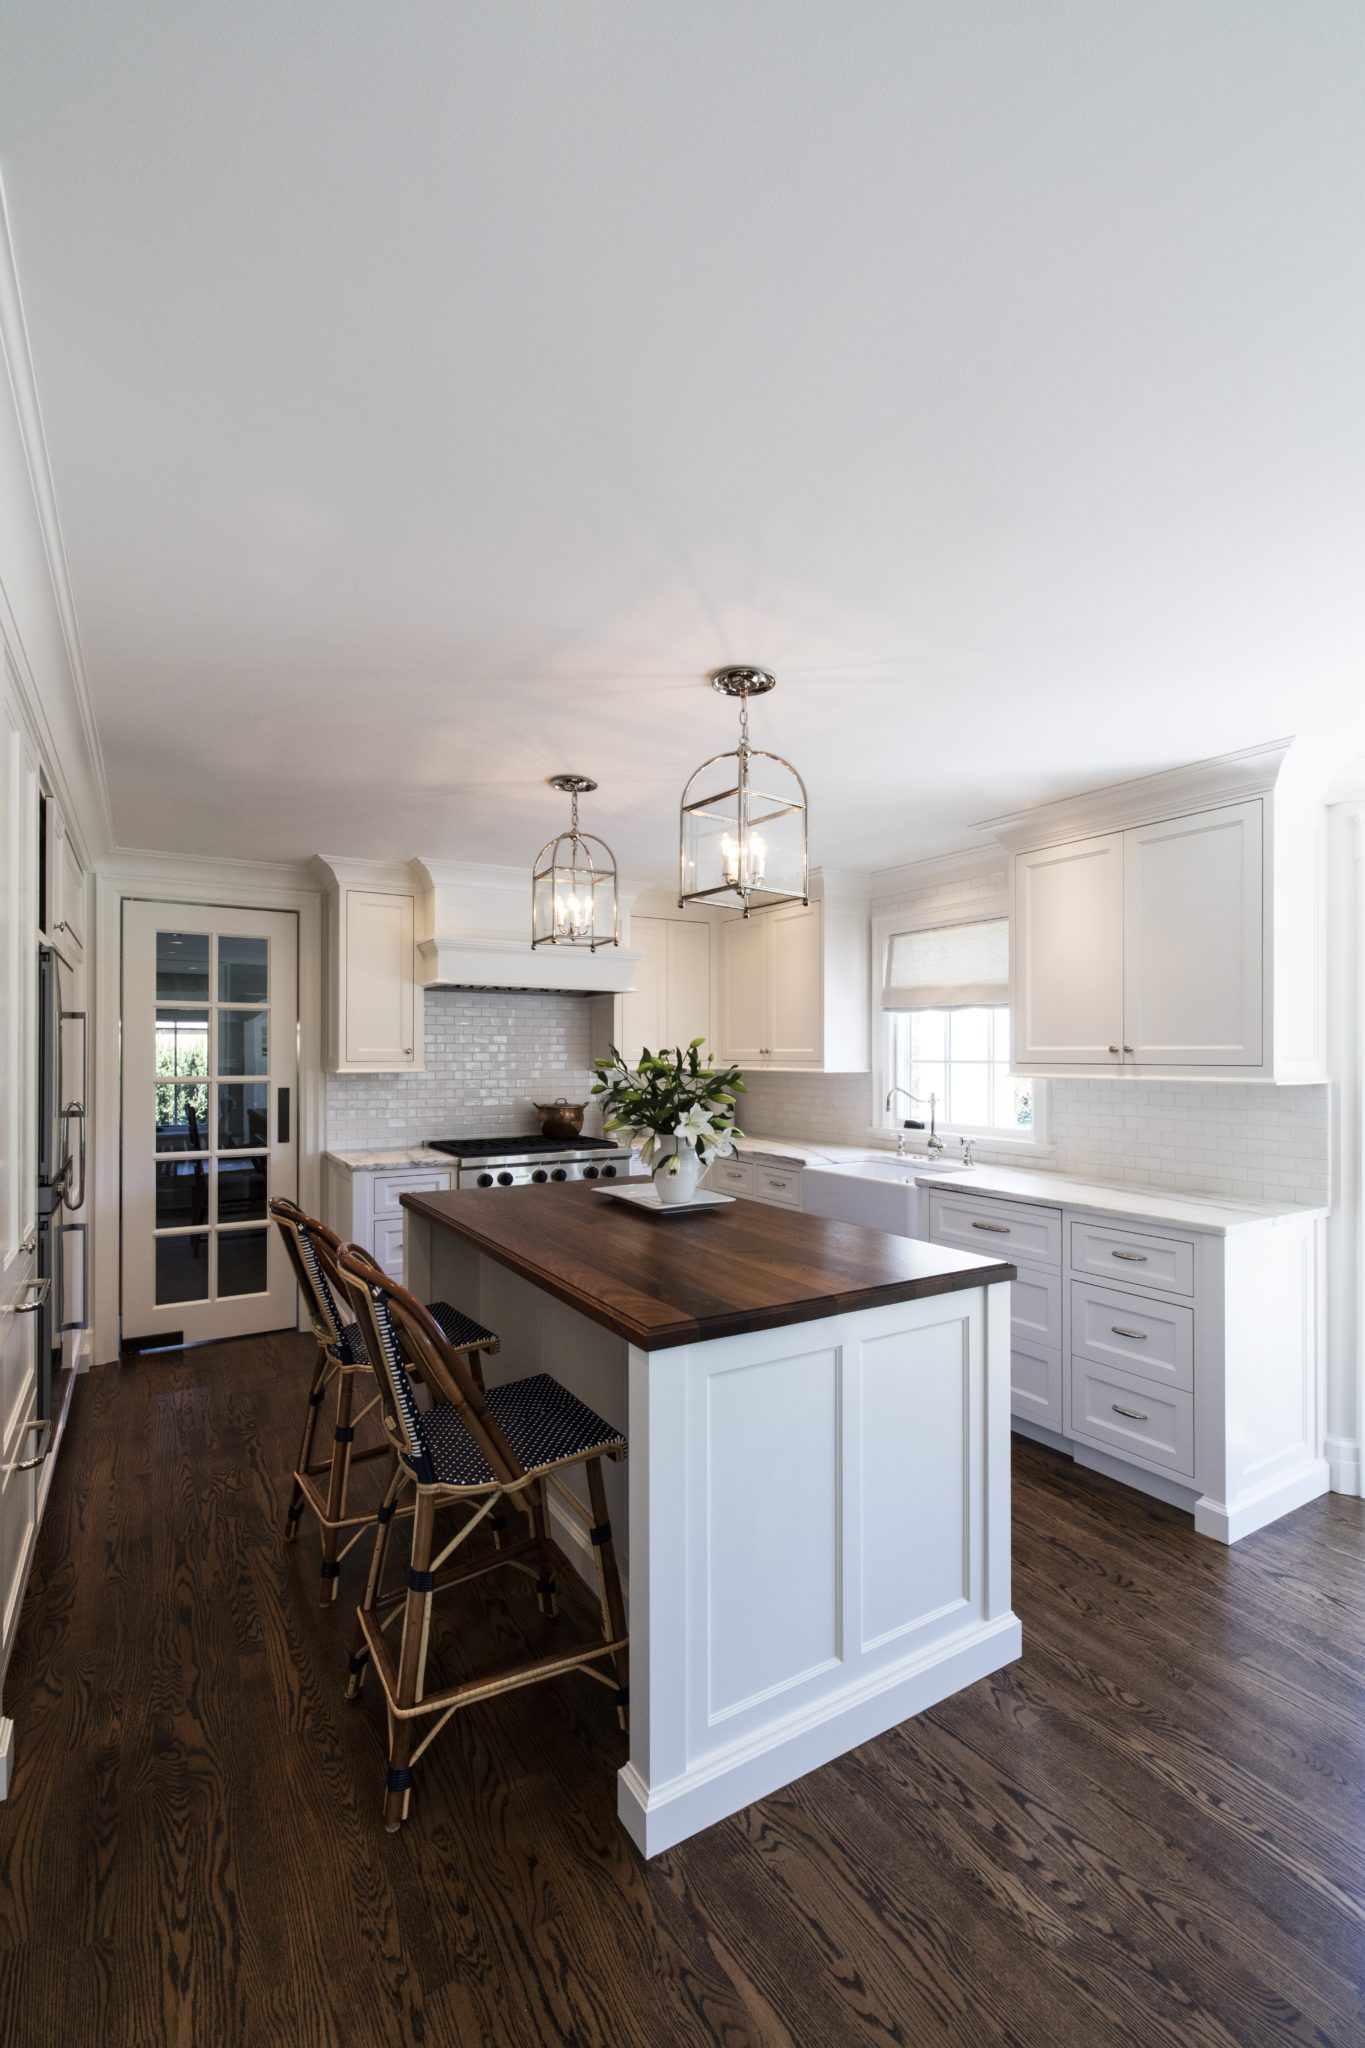 Medina White on White Kitchen and Family Dining Room, Urban Electric Co Lighting by LeeAnn Baker Interiors Ltd.